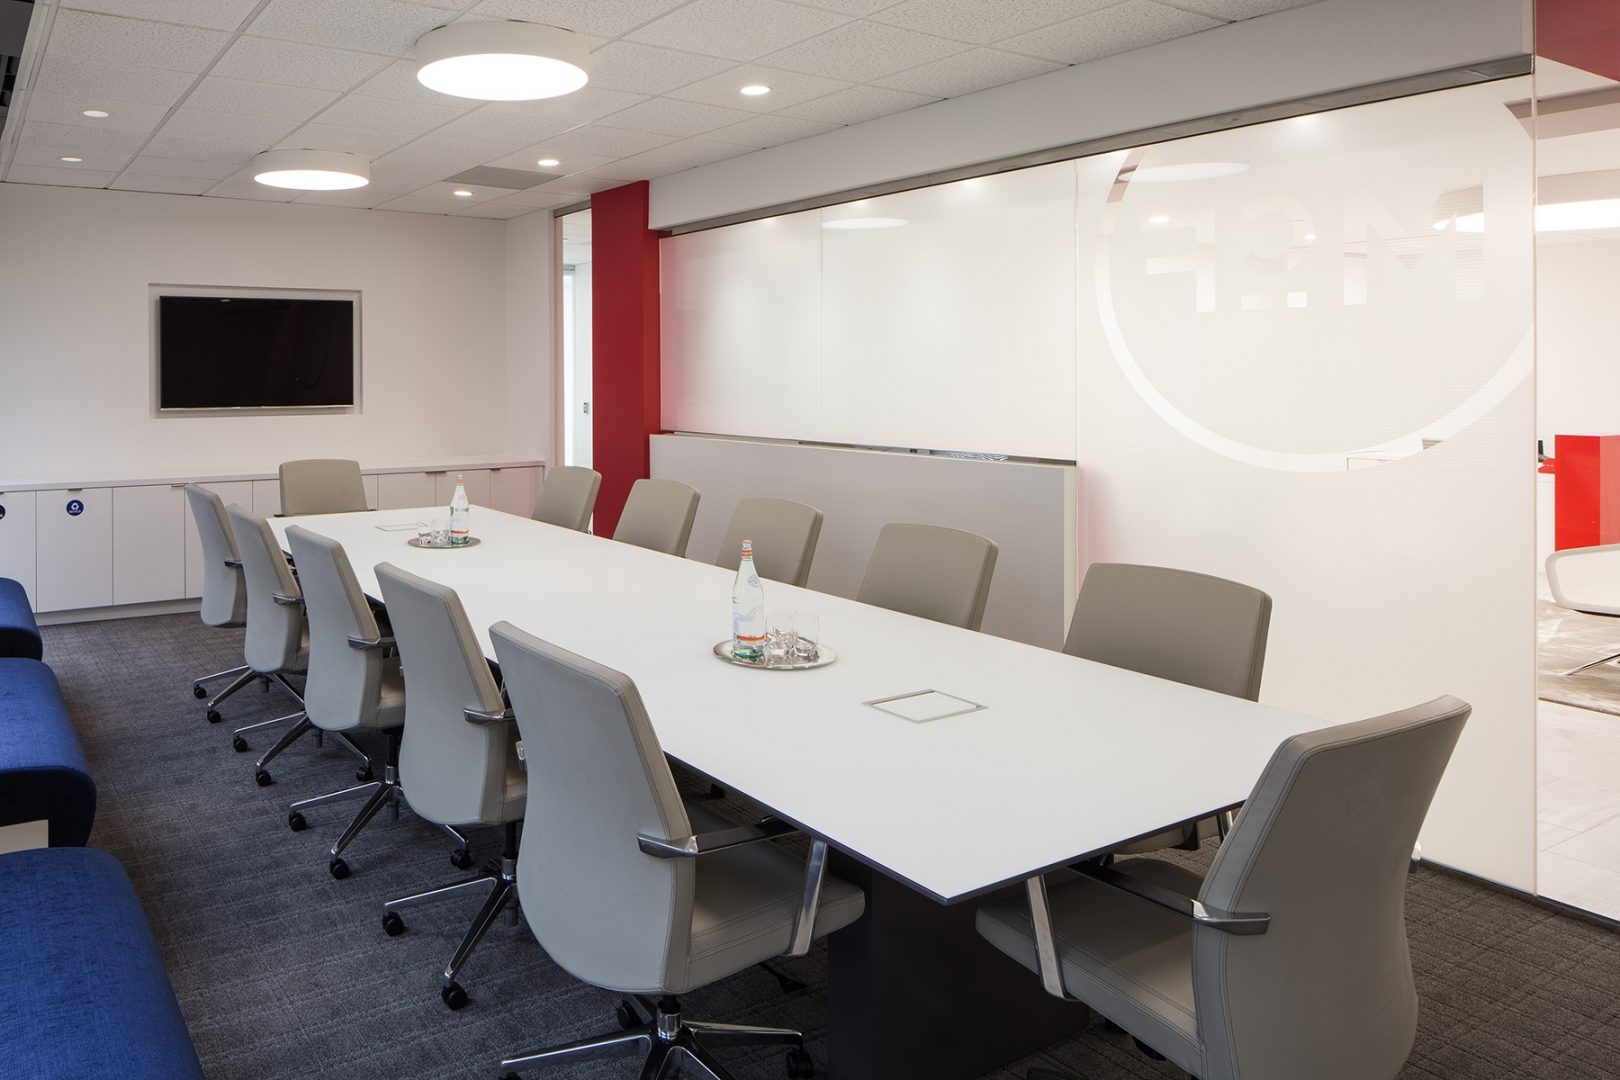 Corporate Interior Law Design McFarland Houston Conference Room